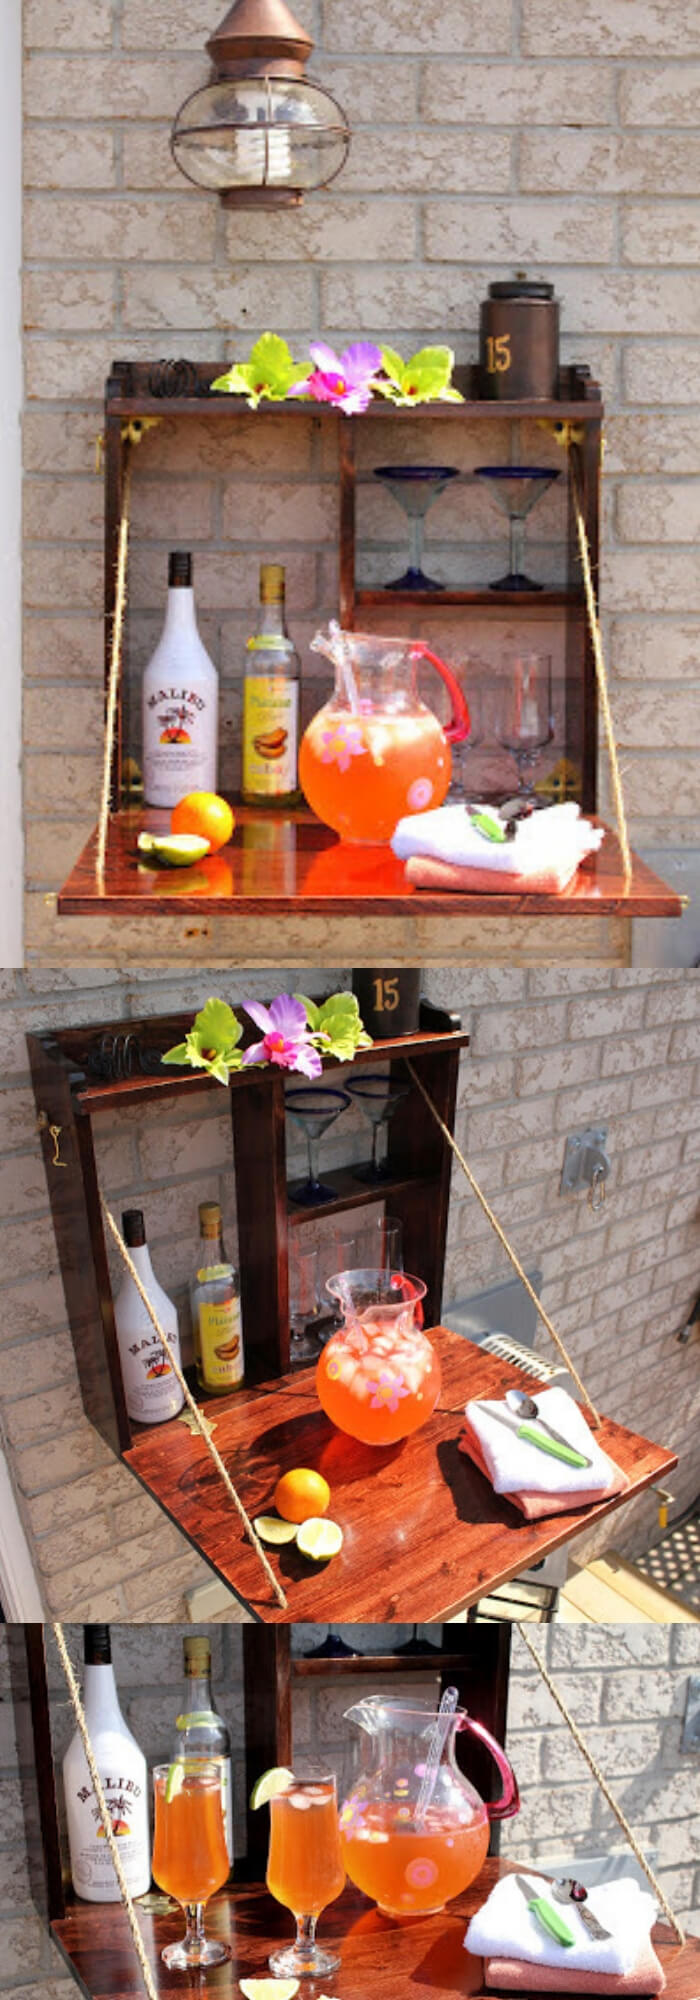 DIY Backyard Bar | DIY Backyard Projects For Summer | FarmFoodFamily